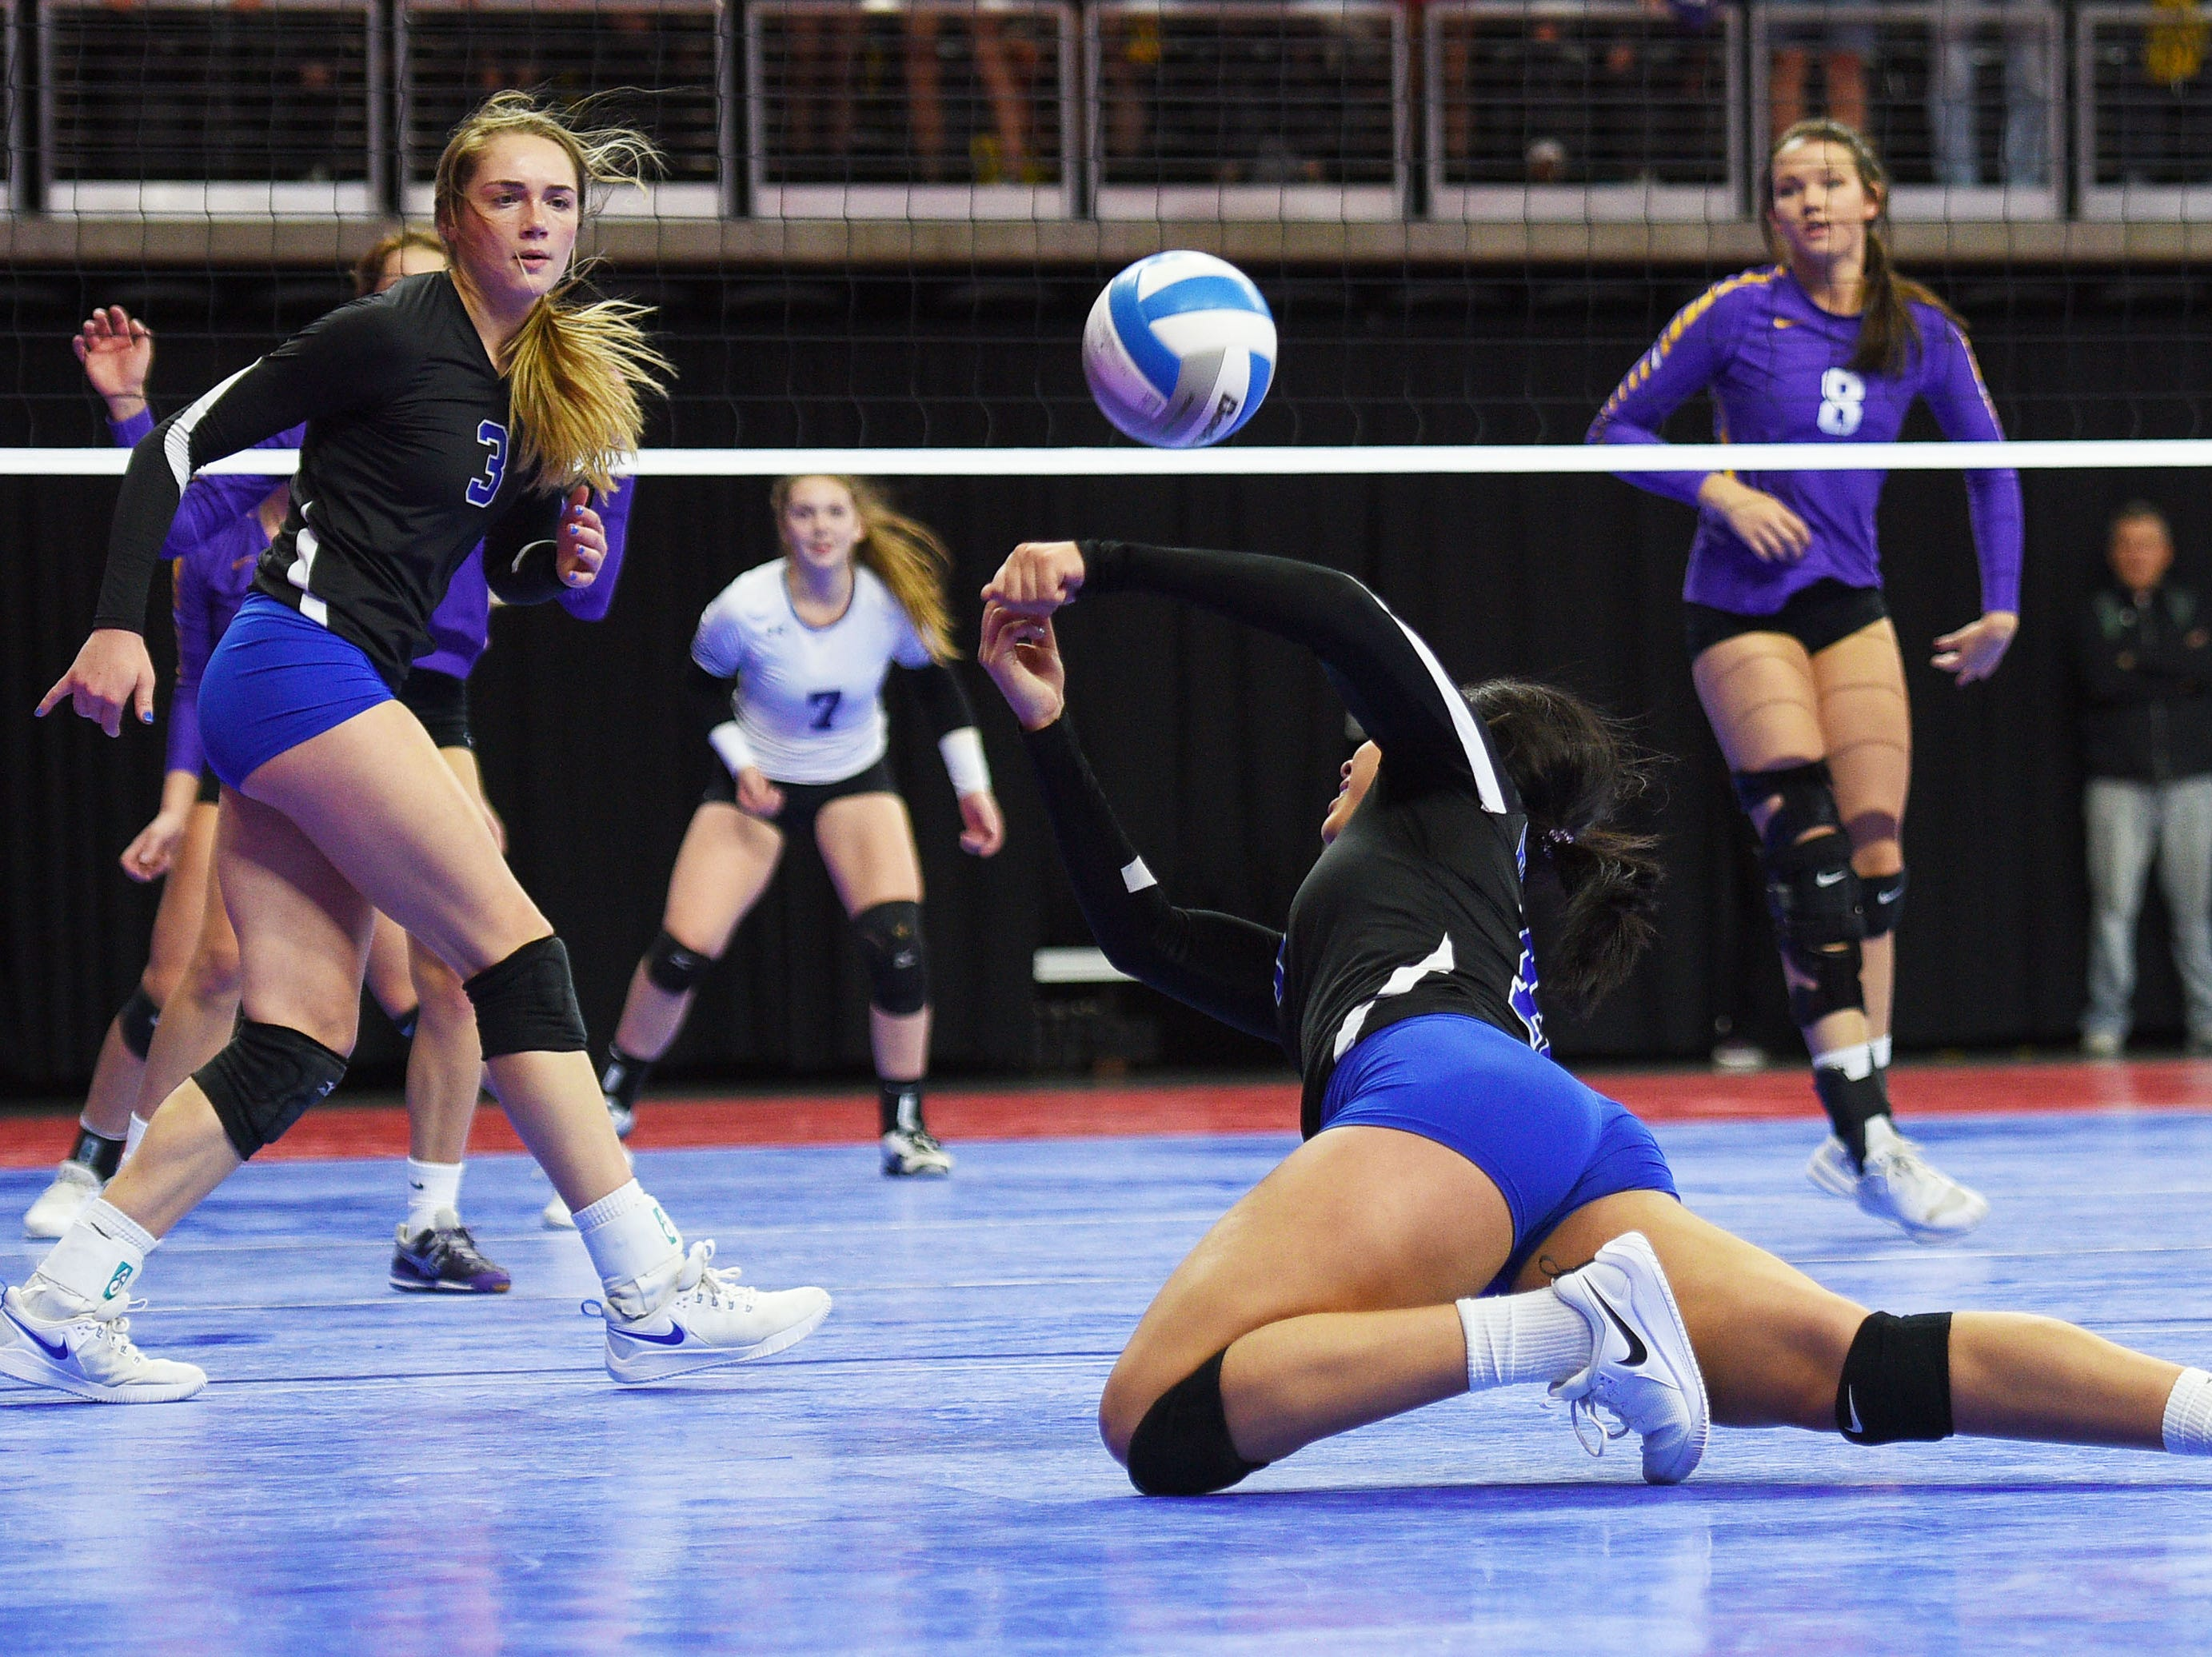 RC Stevens' Kyah Watson dives for the ball during the game against Watertown during the semifinals Friday, Nov. 16, at the Denny Sanford Premier Center in Sioux Falls.